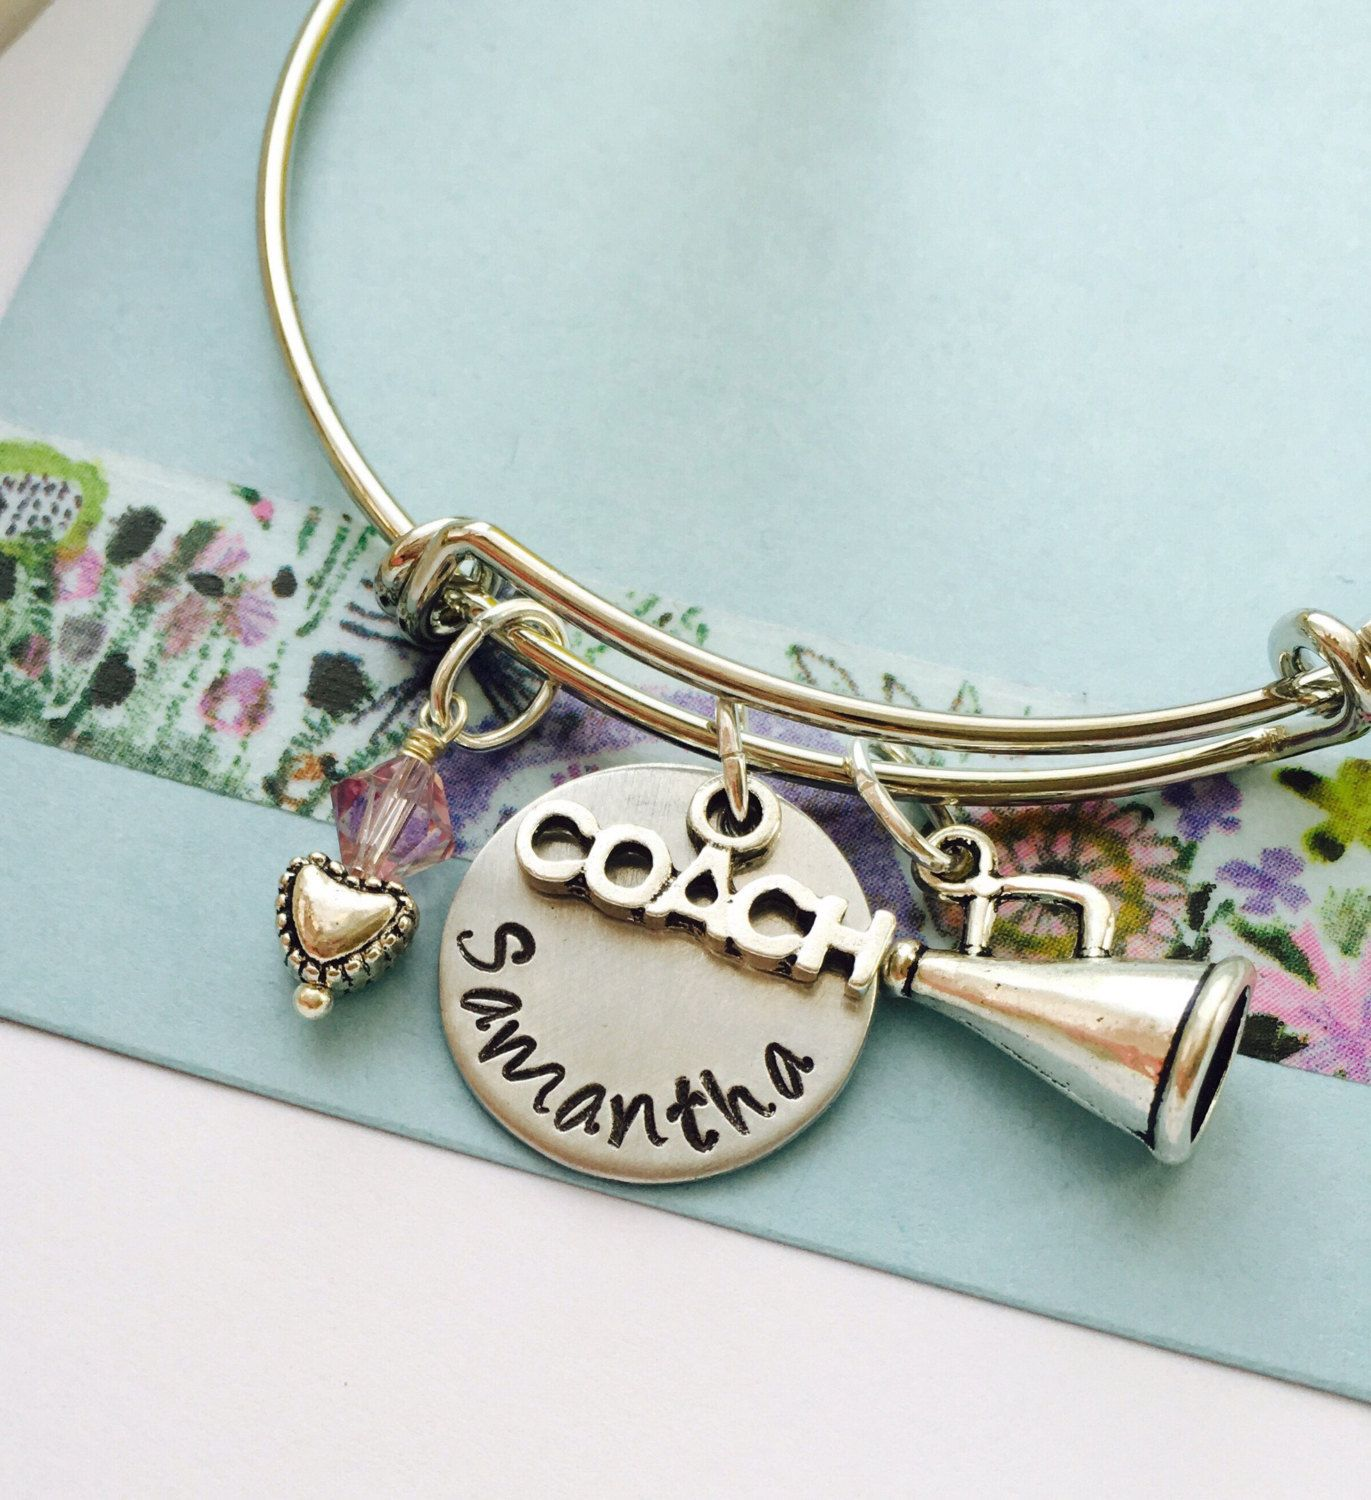 Cheerleader coach bracelet cheer bangle bracelet cherleading